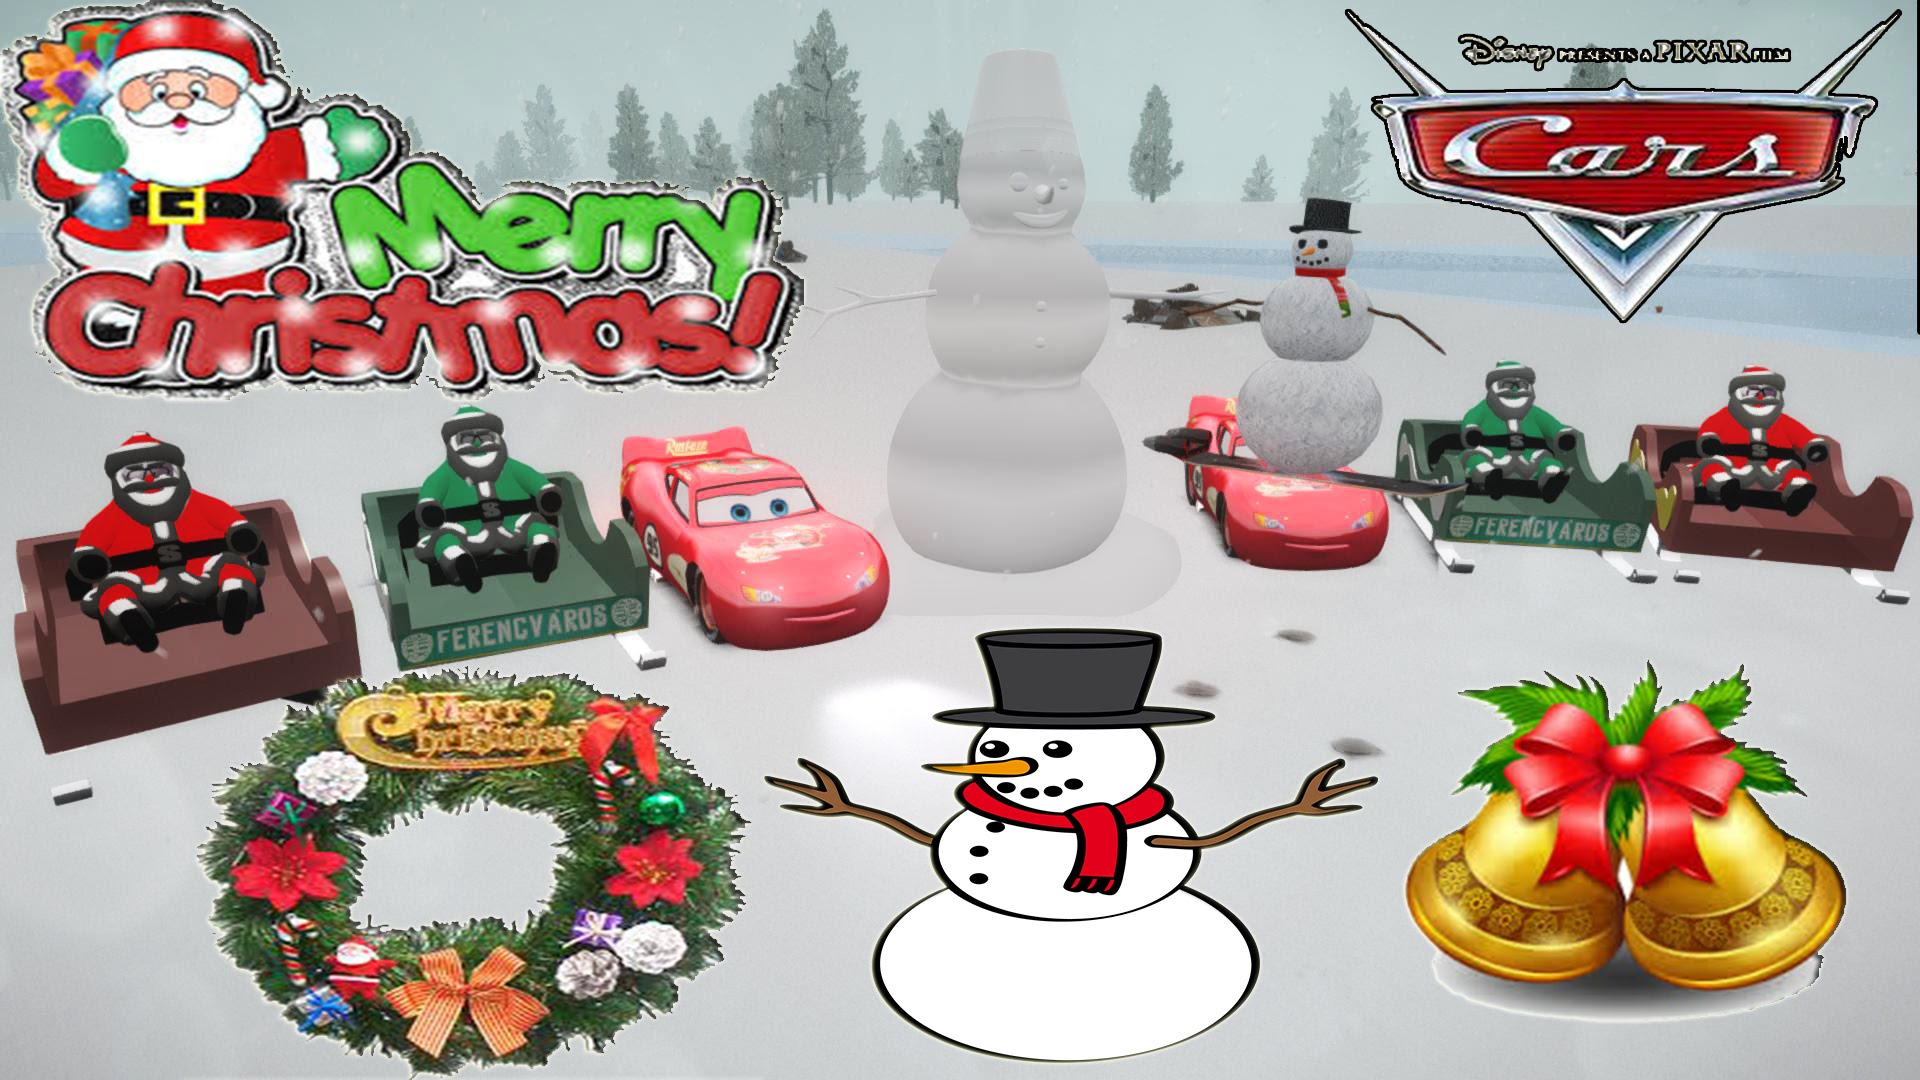 Merry Christmas clipart disney cars And Snowman Fun Disney Santa